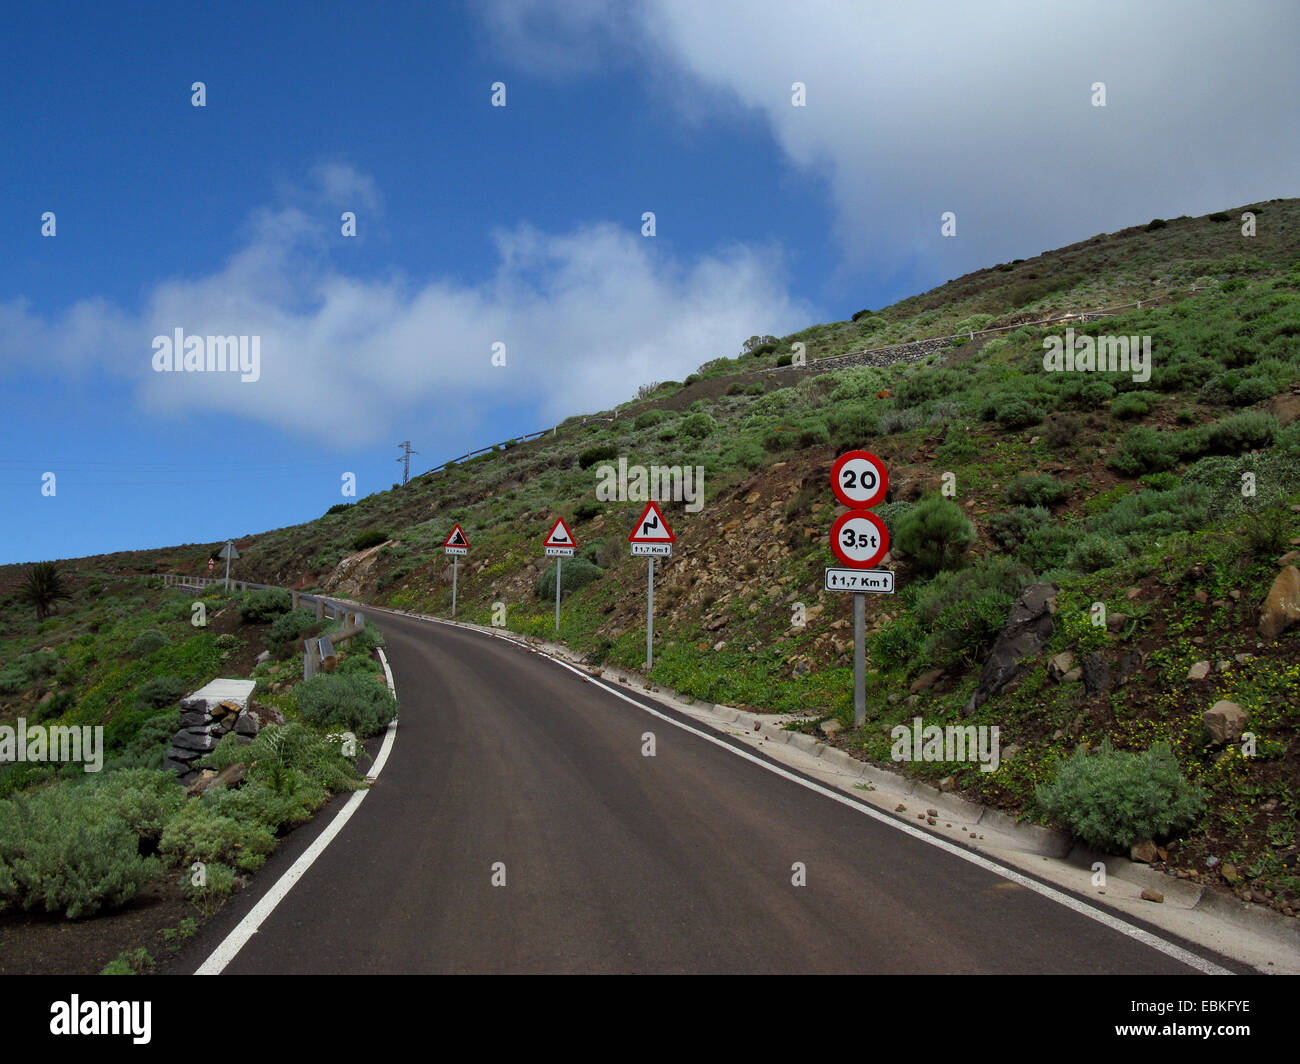 jungles of signs at a new street in the valley of Tazo, Canary Islands, Gomera - Stock Image